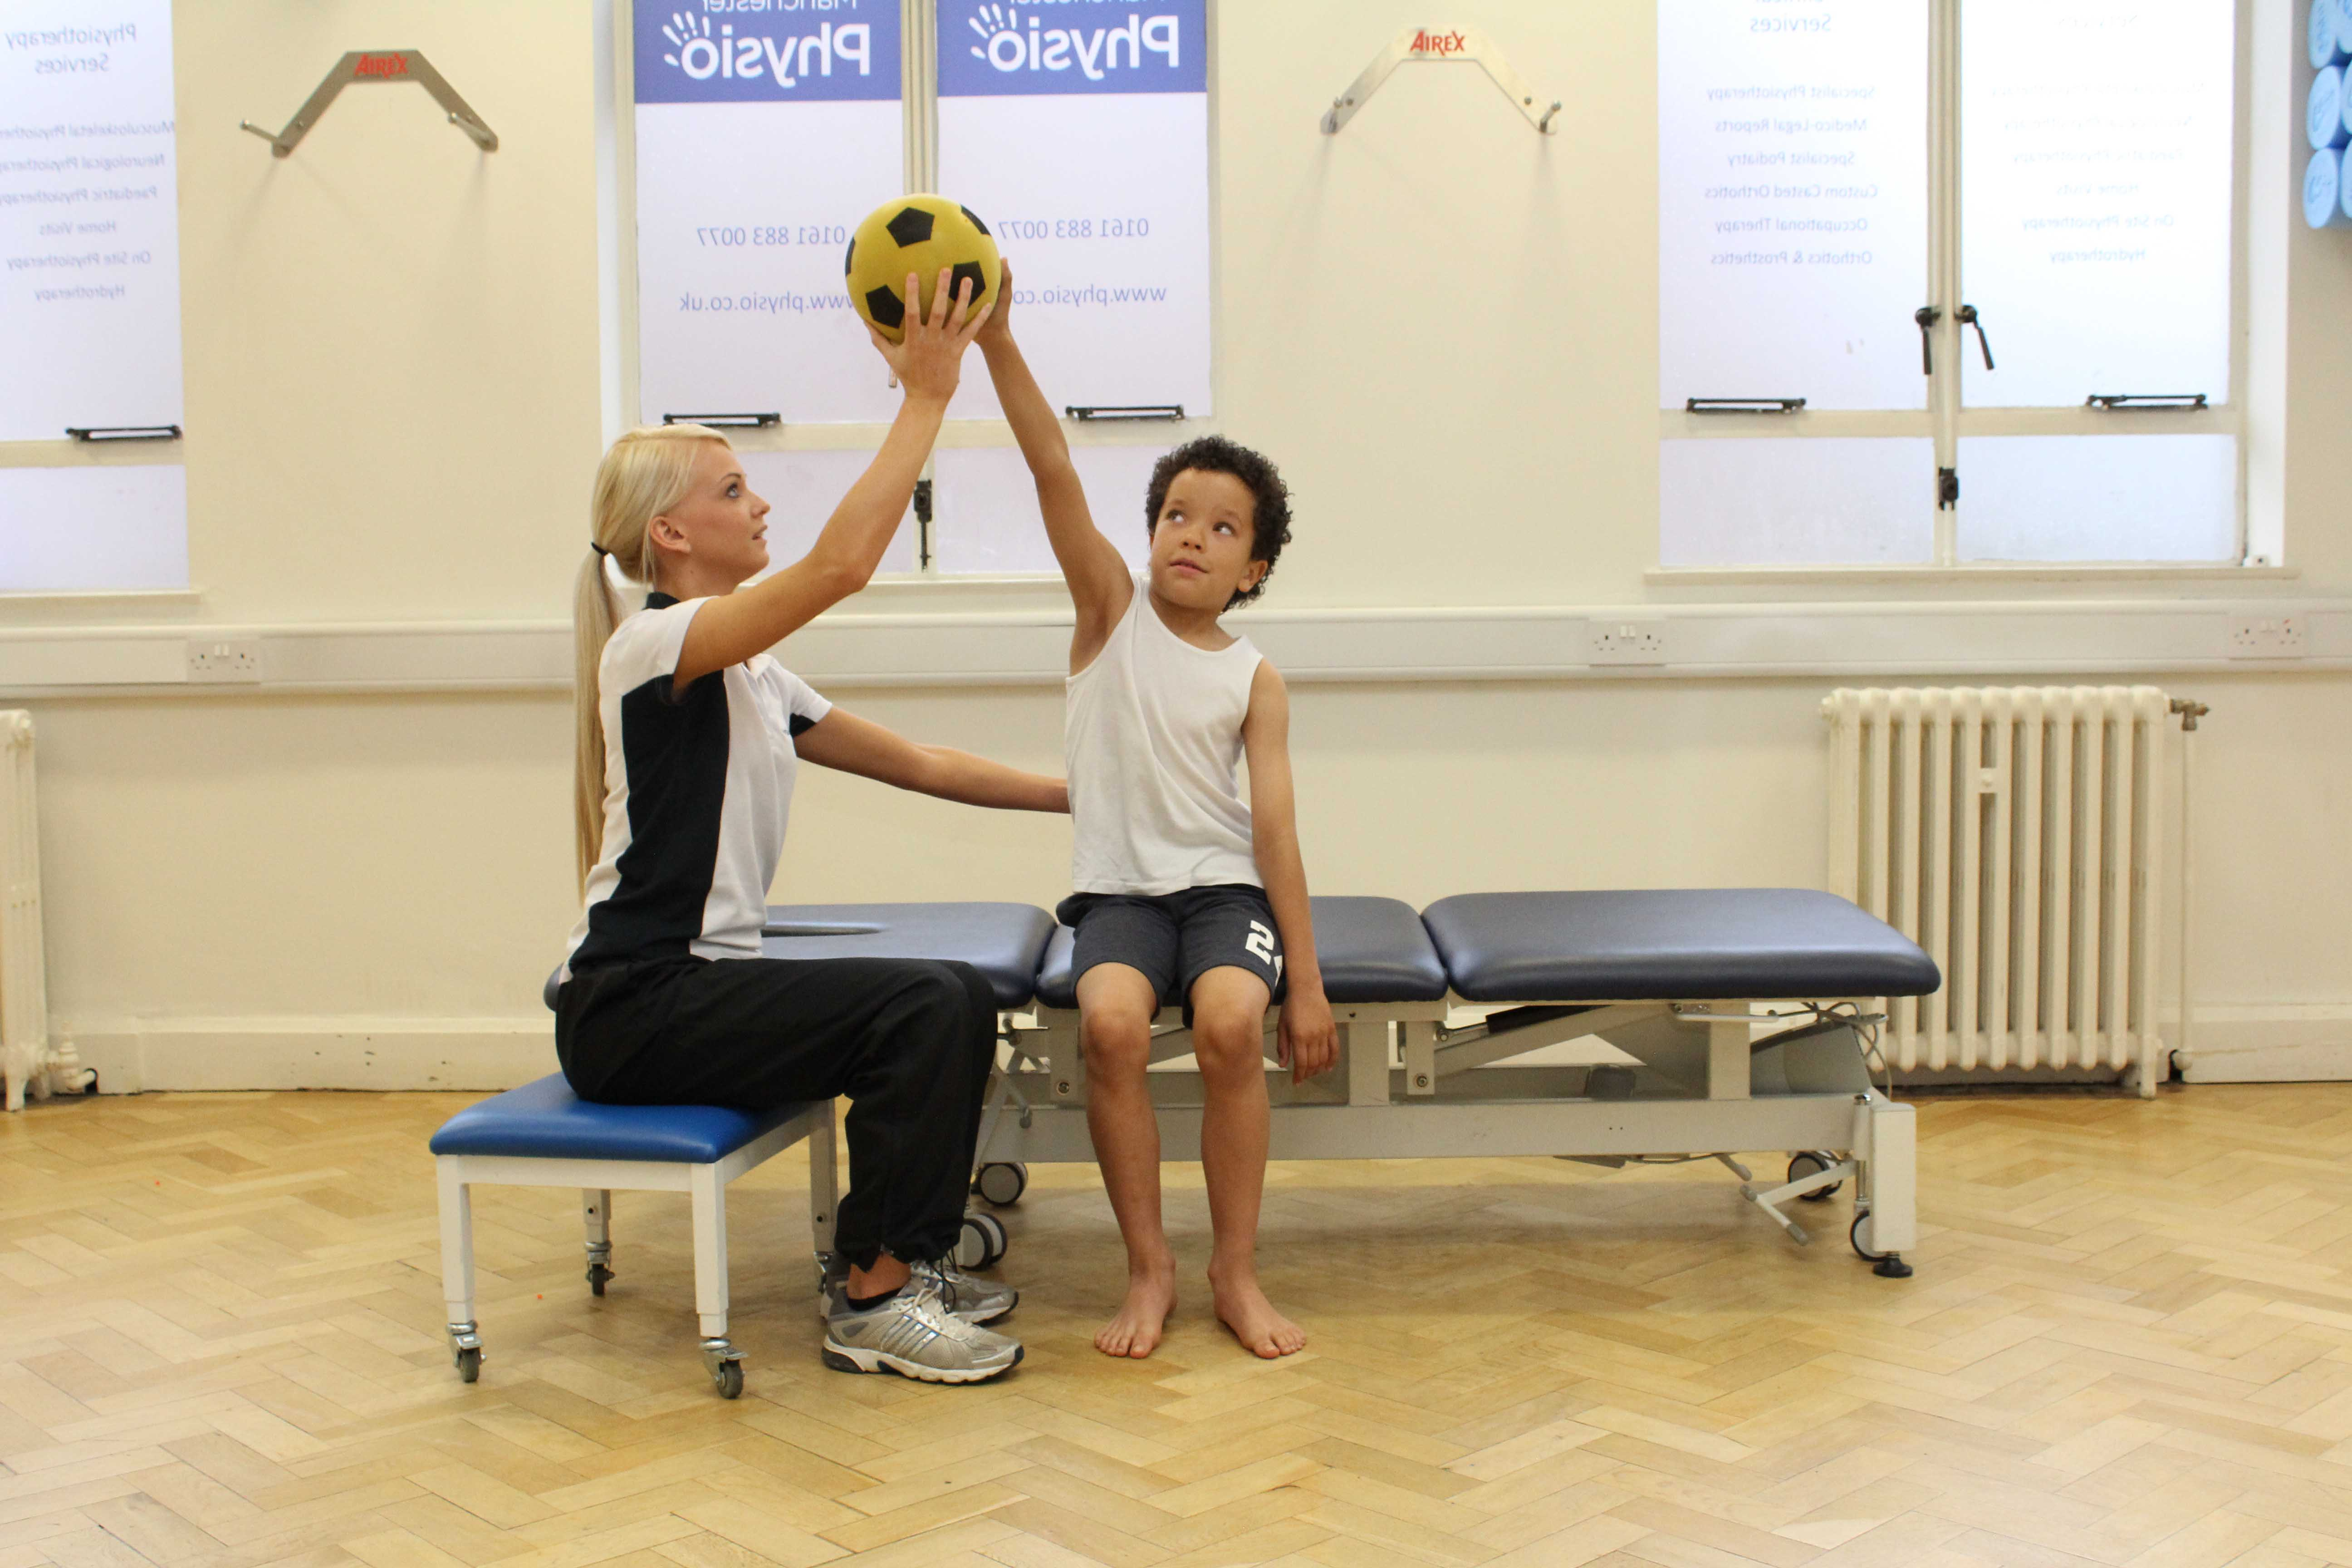 Dynamic strength exercises performed with assistance of paediatric physiotherapist